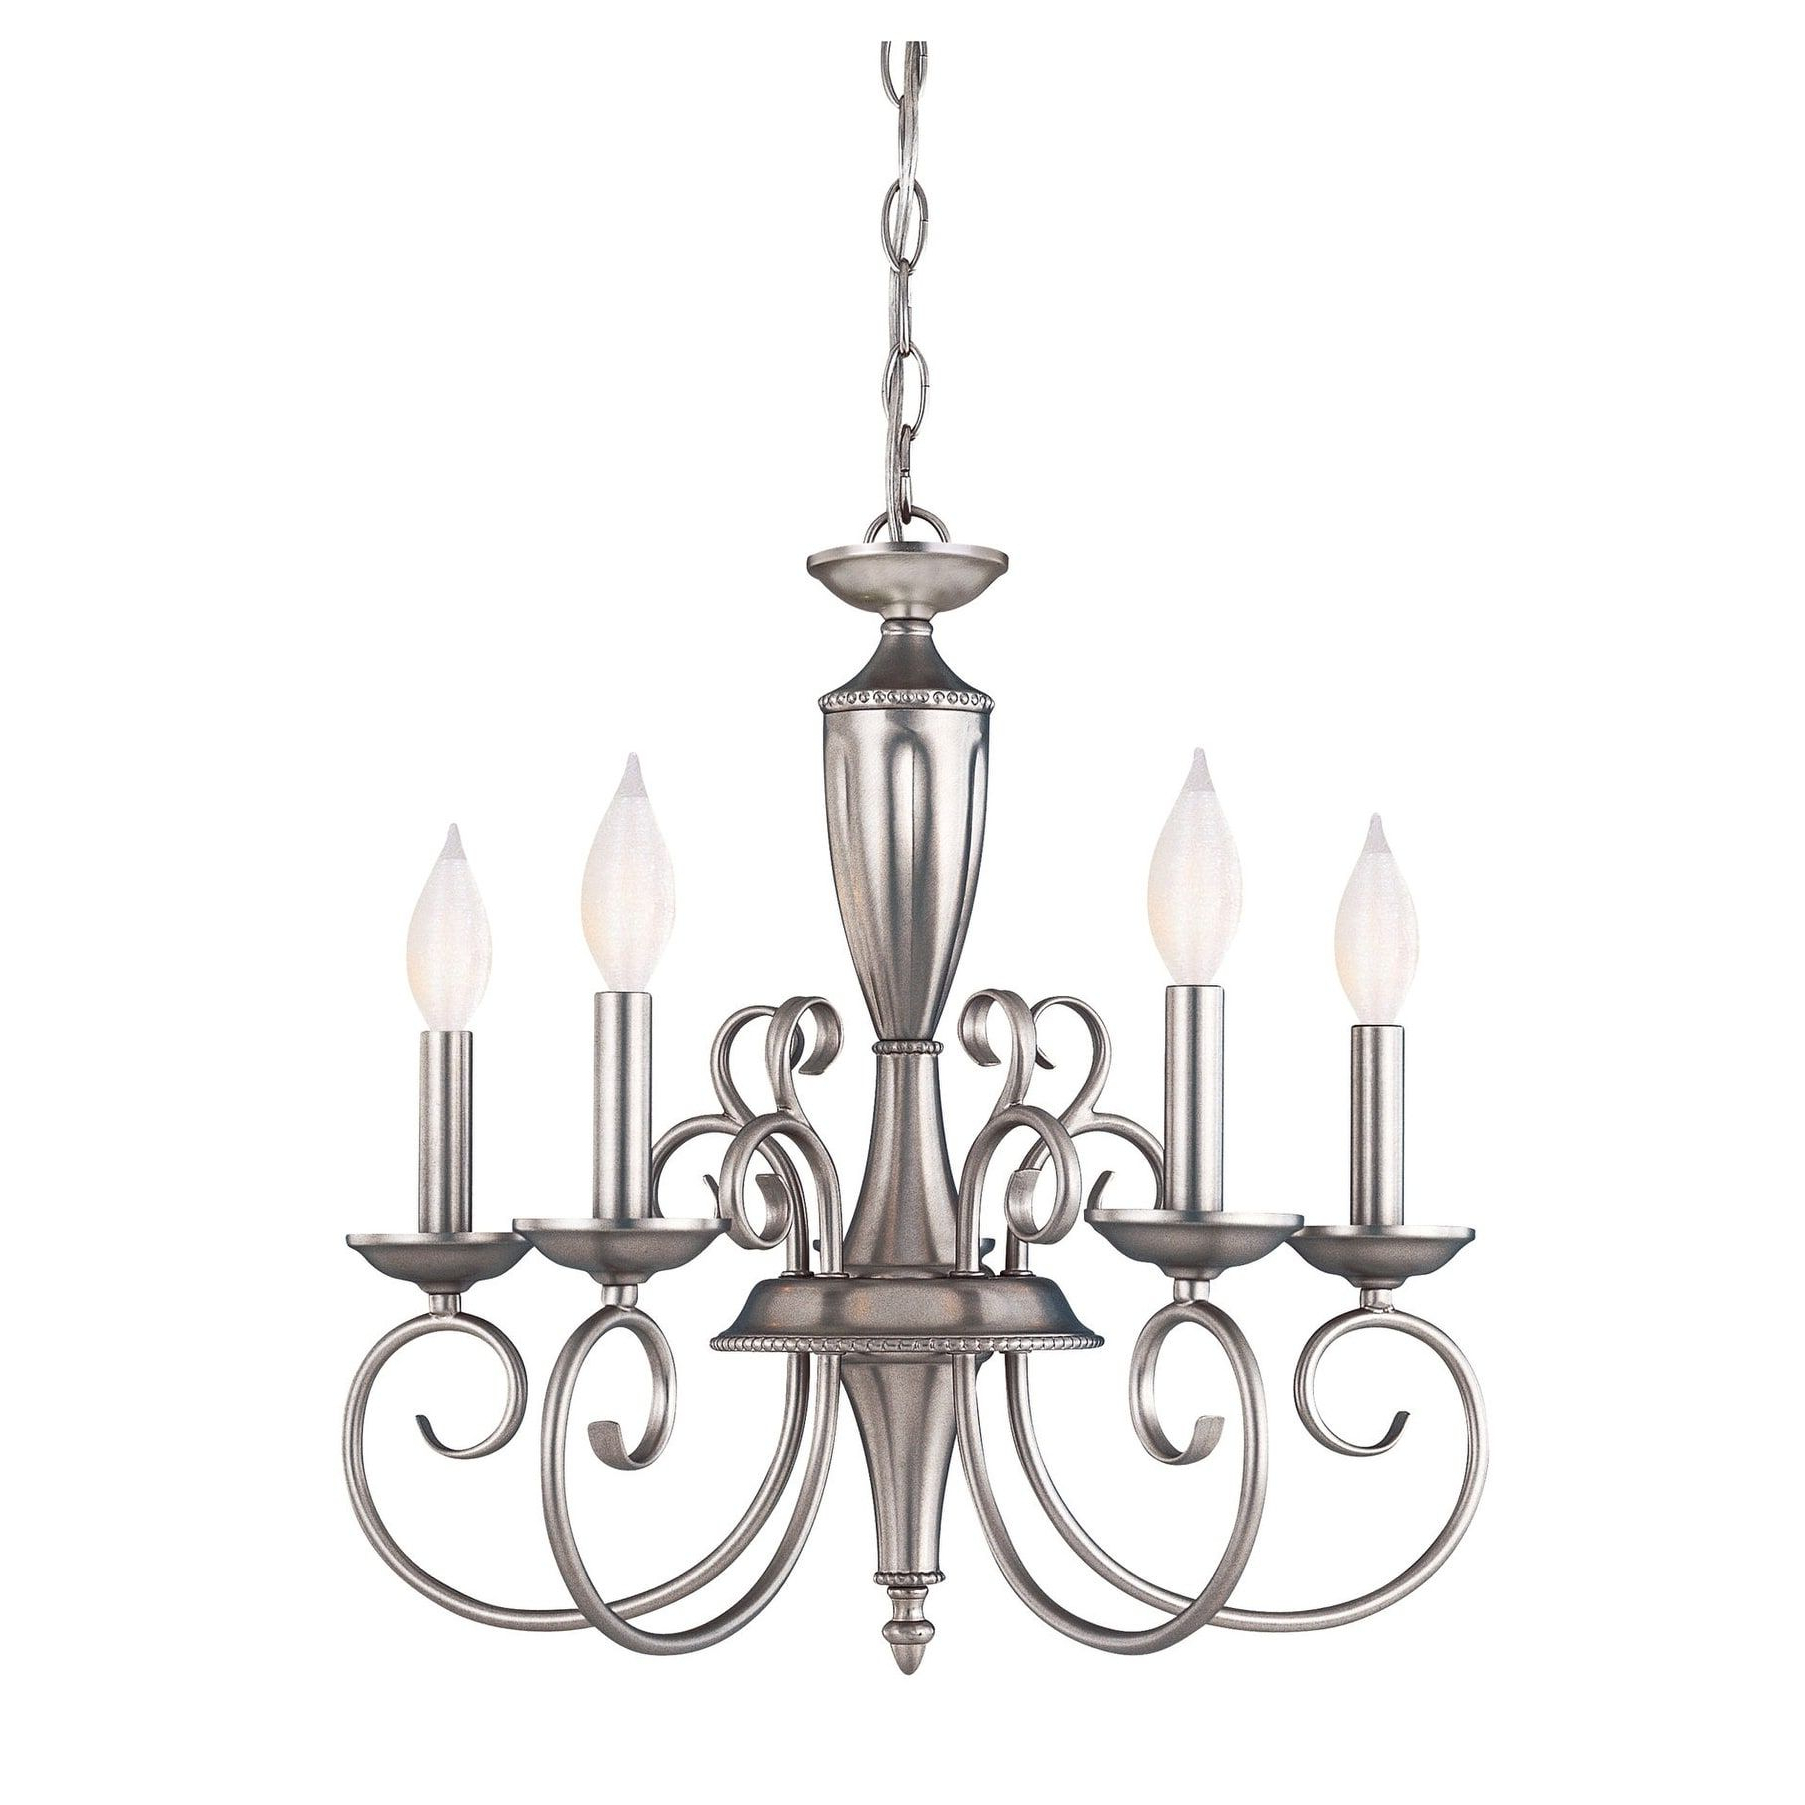 Berger 5 Light Candle Style Chandeliers Pertaining To Fashionable Spirit 5 Light Chandelier Pewter In (View 8 of 20)